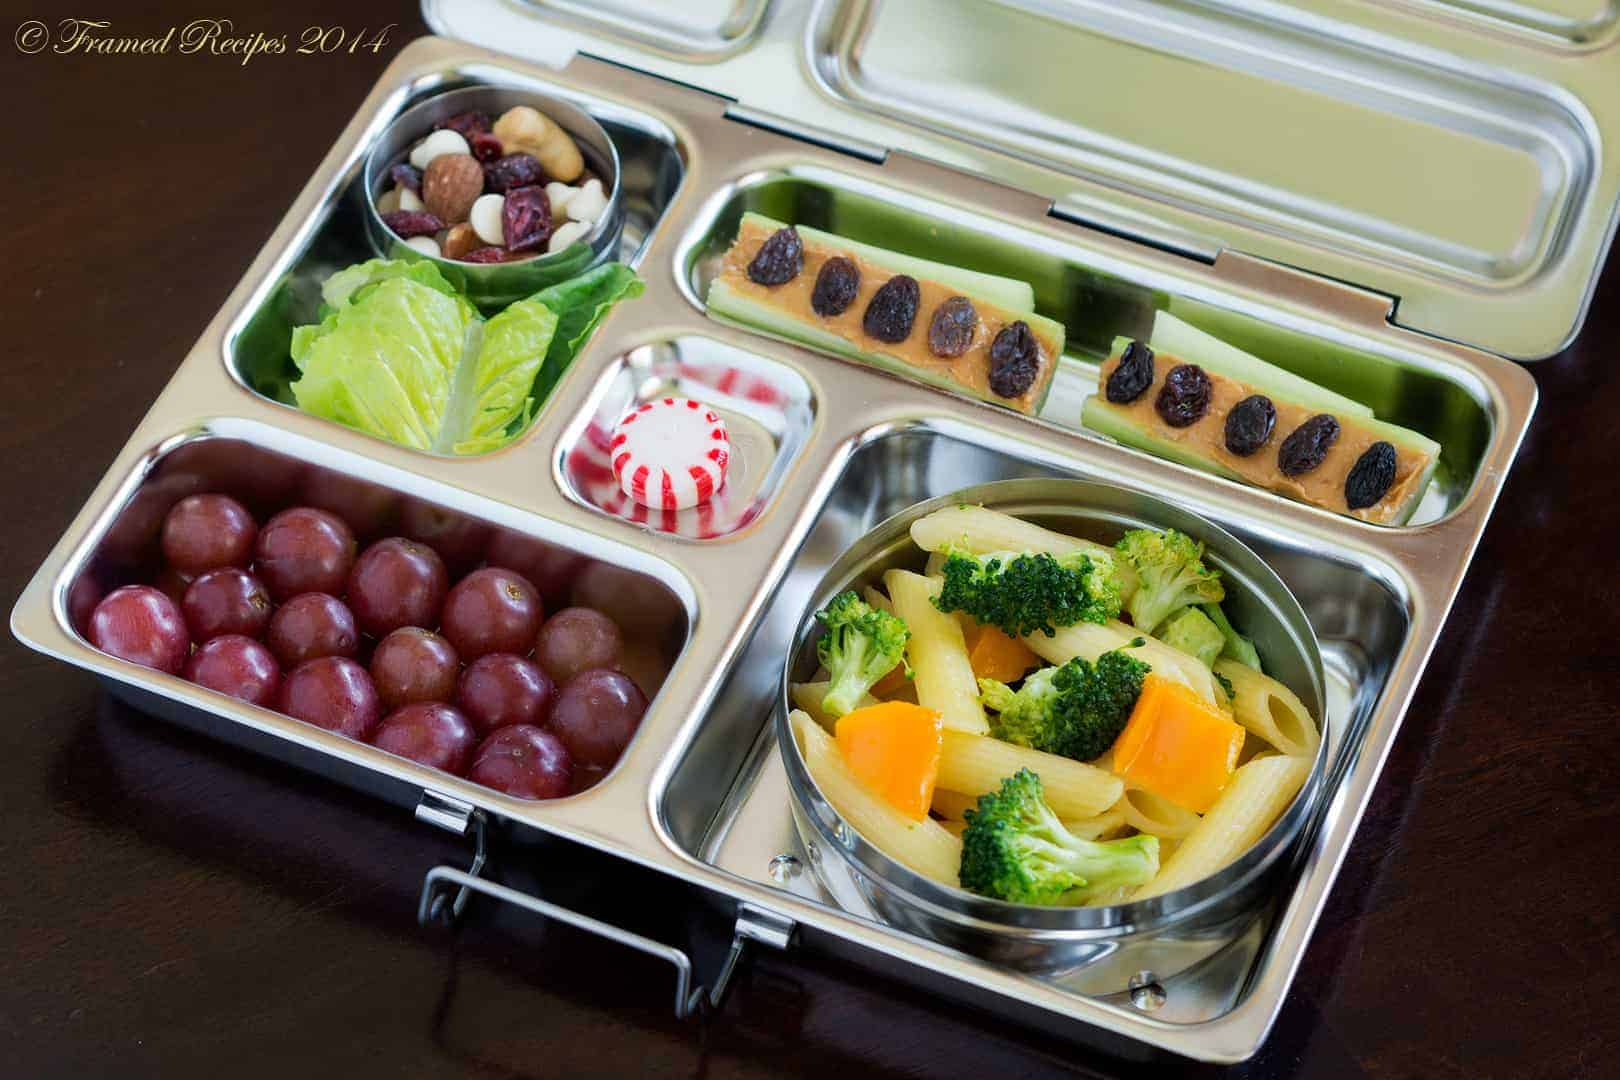 Lunchbox Favorites School Lunch Ideas and Recipes Delicious kids lunch ideas perfect for a lunch box. With fun noodle salads, roll ups and more, your child won't be trading her lunch with the other kids!